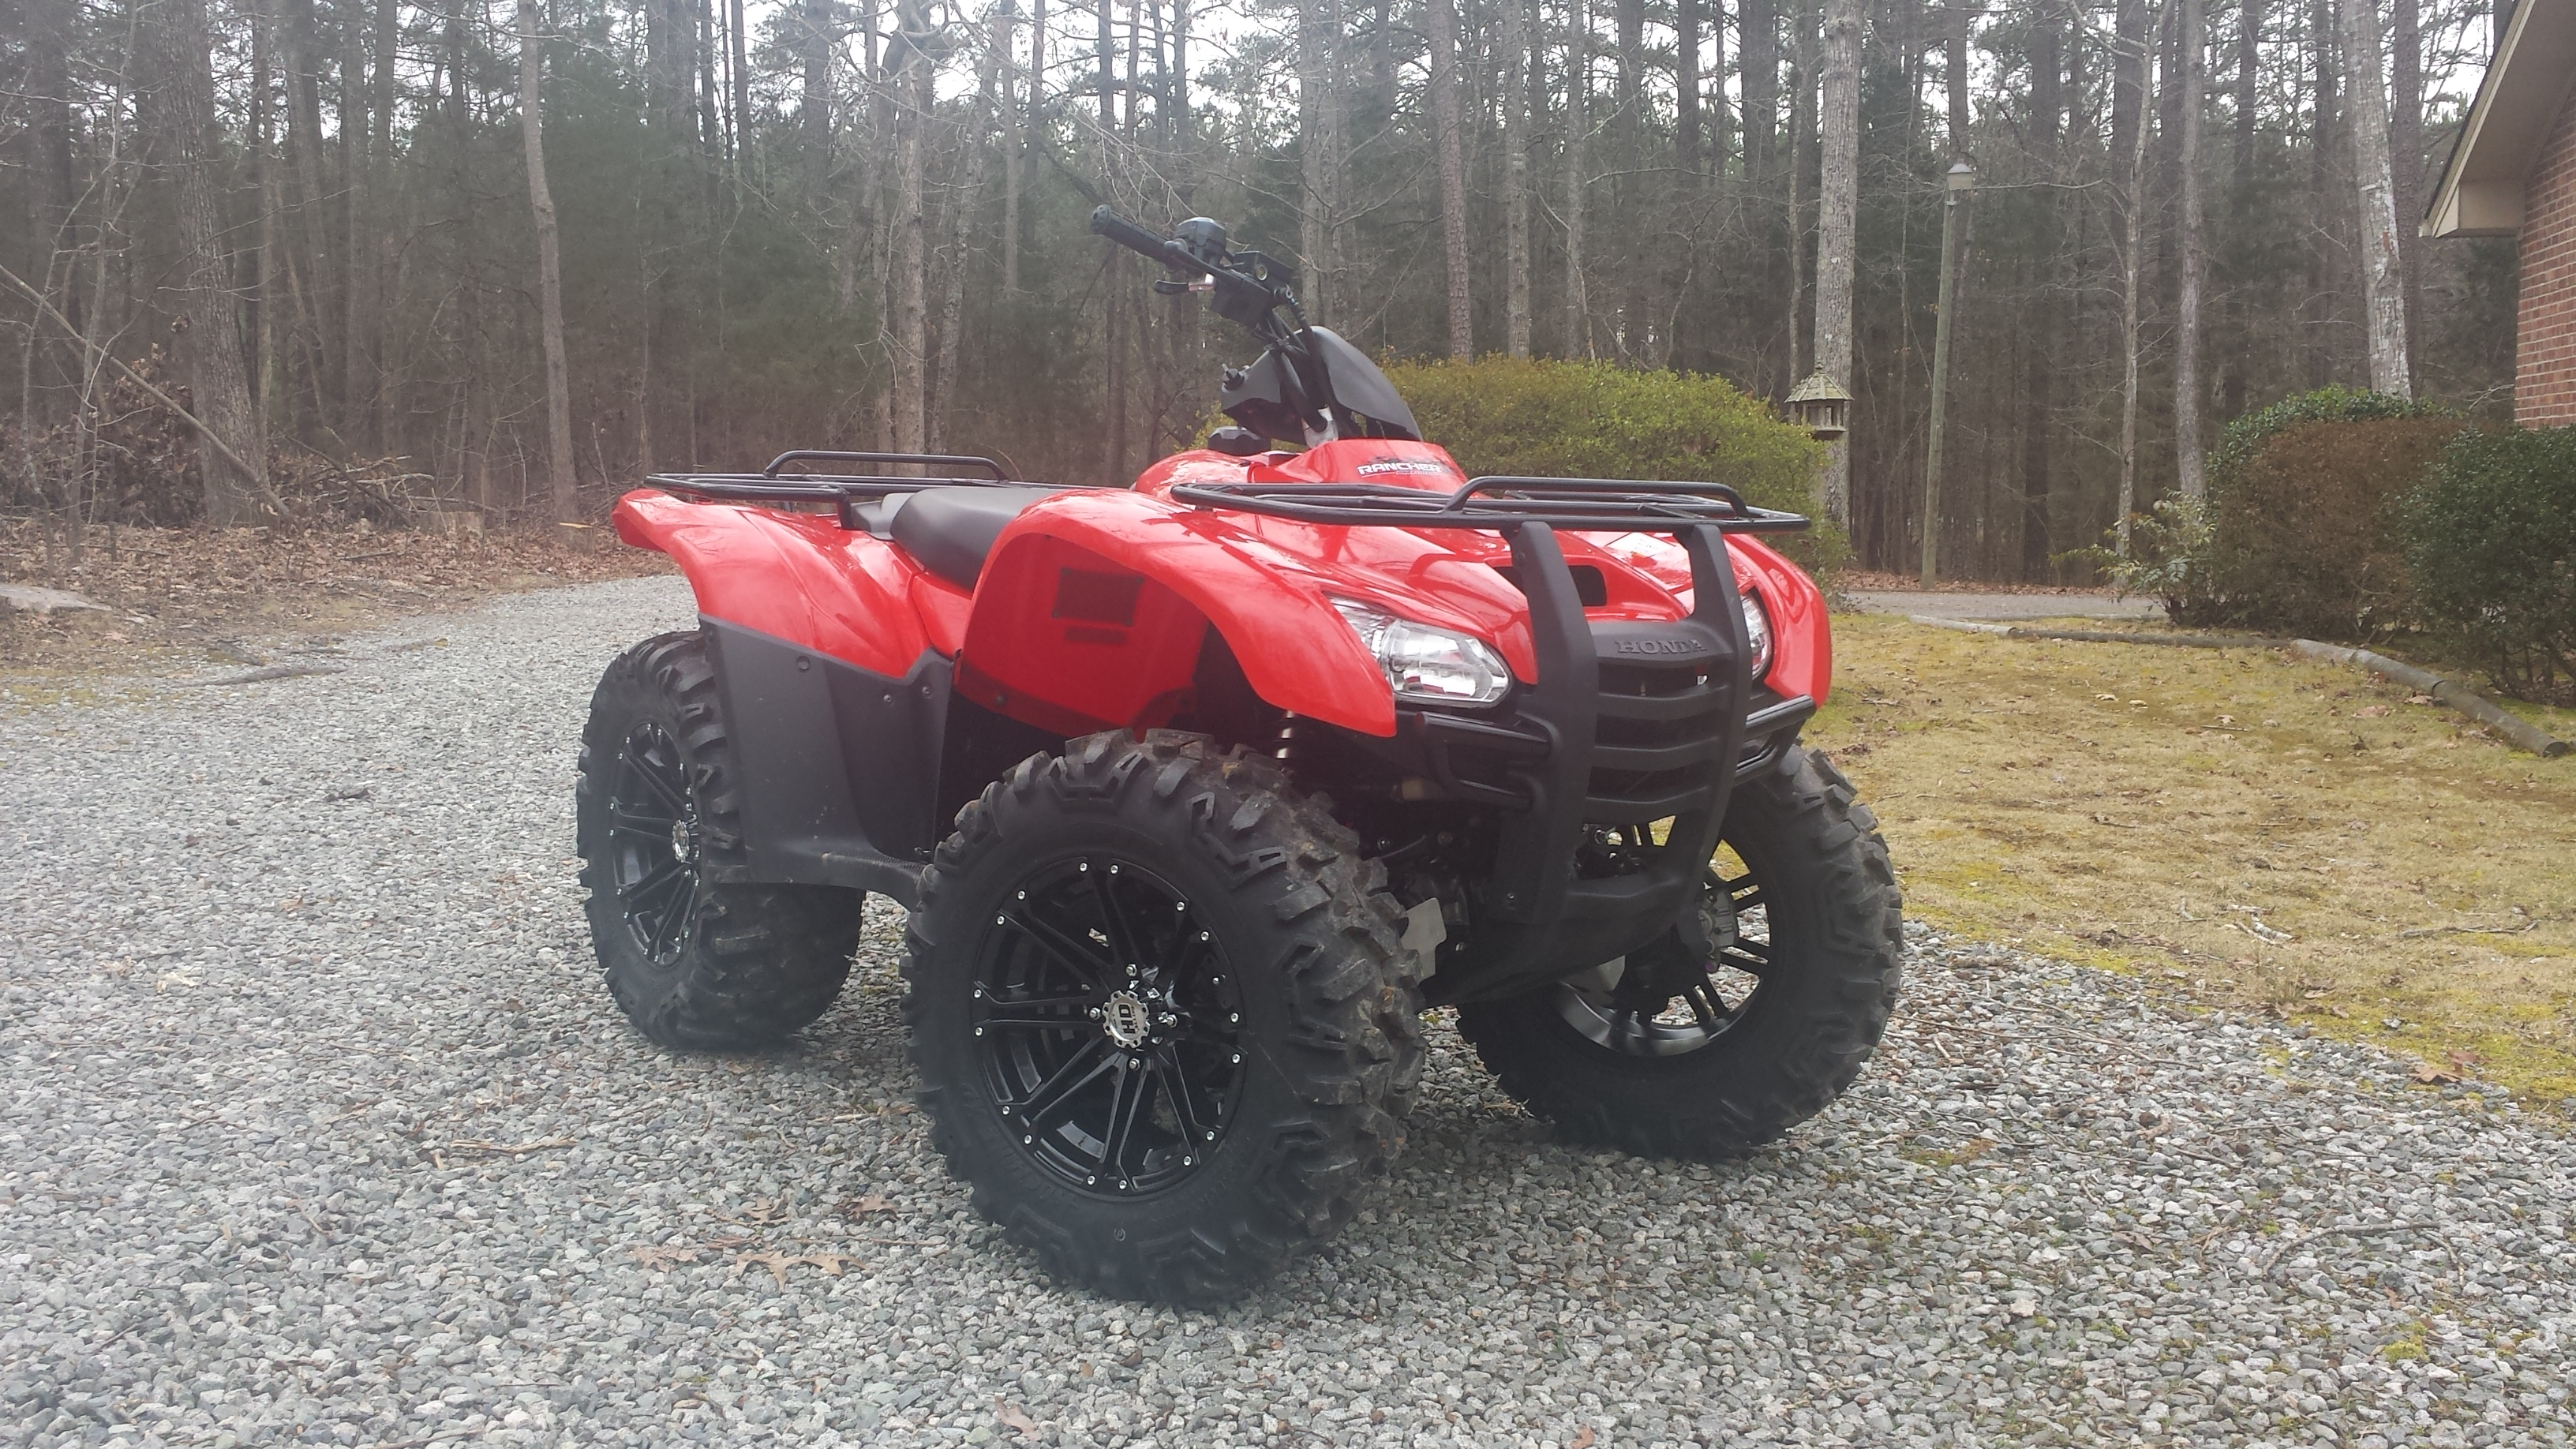 New Rims/Tires on my '13 Rancher AT IRS - Honda ATV Forum